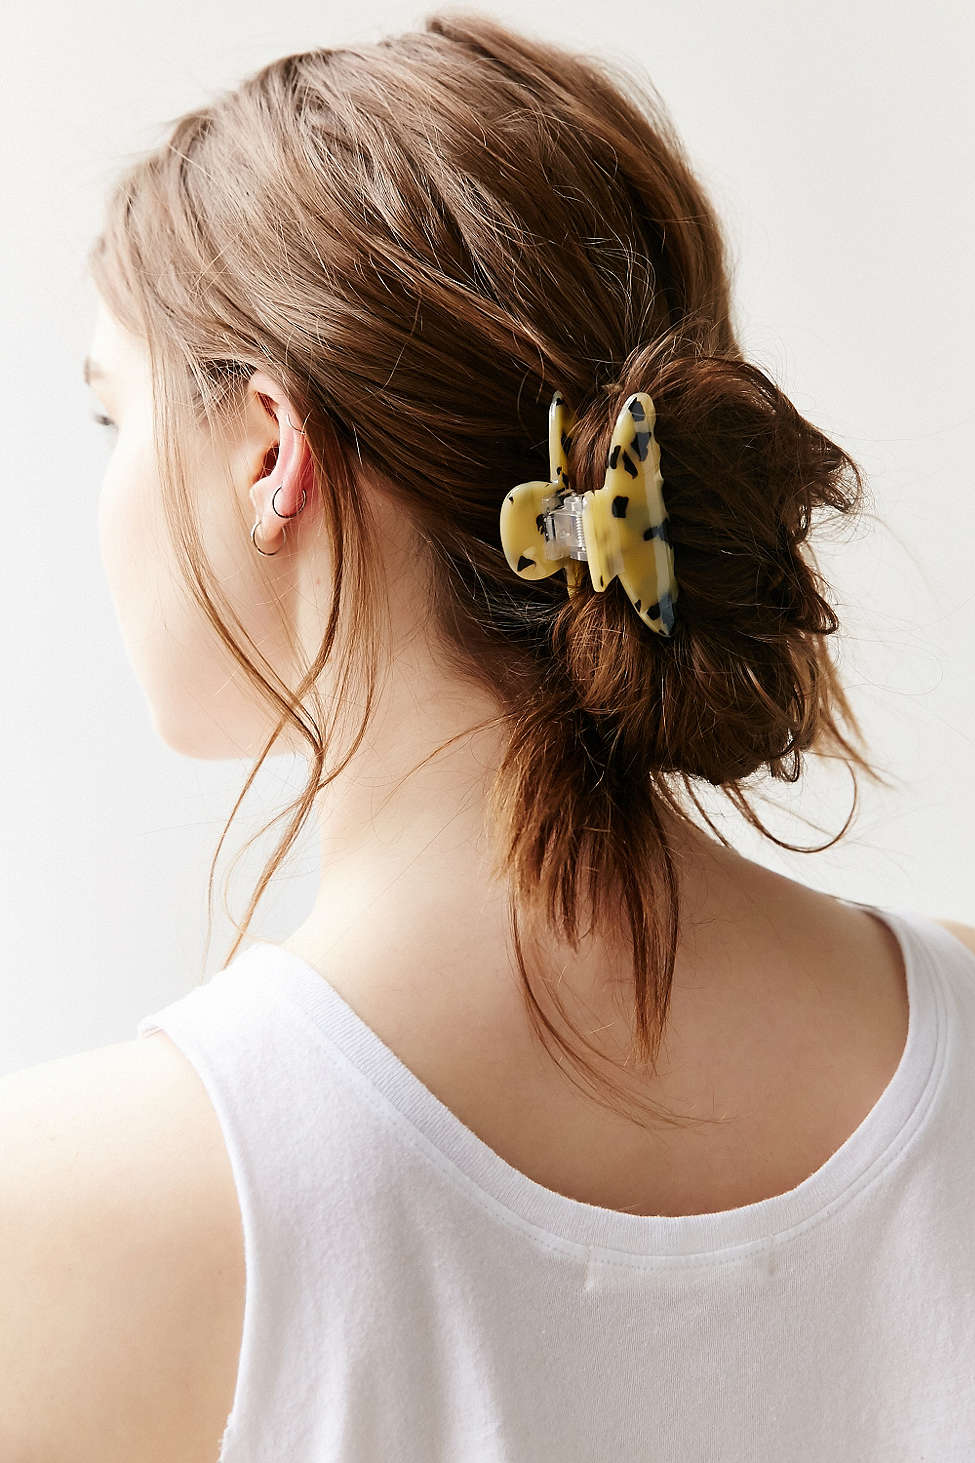 how-to-style-hair-accessories-claw-clips-butterfly-banana-mini-messy-bun-low.jpg